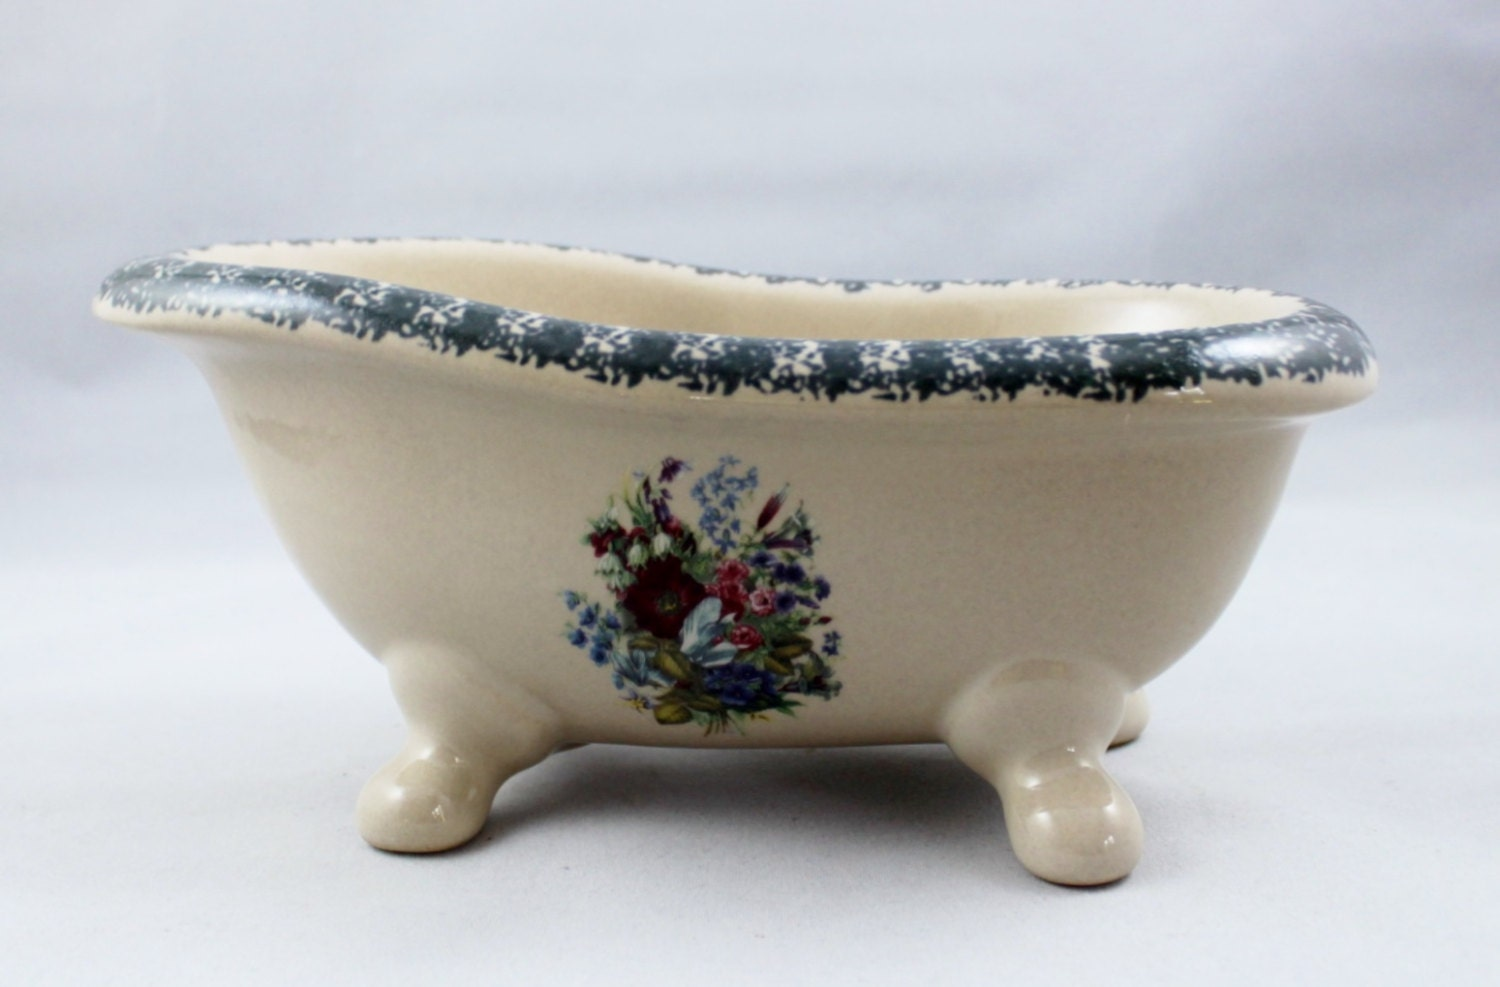 Vintage Ceramic Footed Bathtub Soap Jewelry Dish Planter